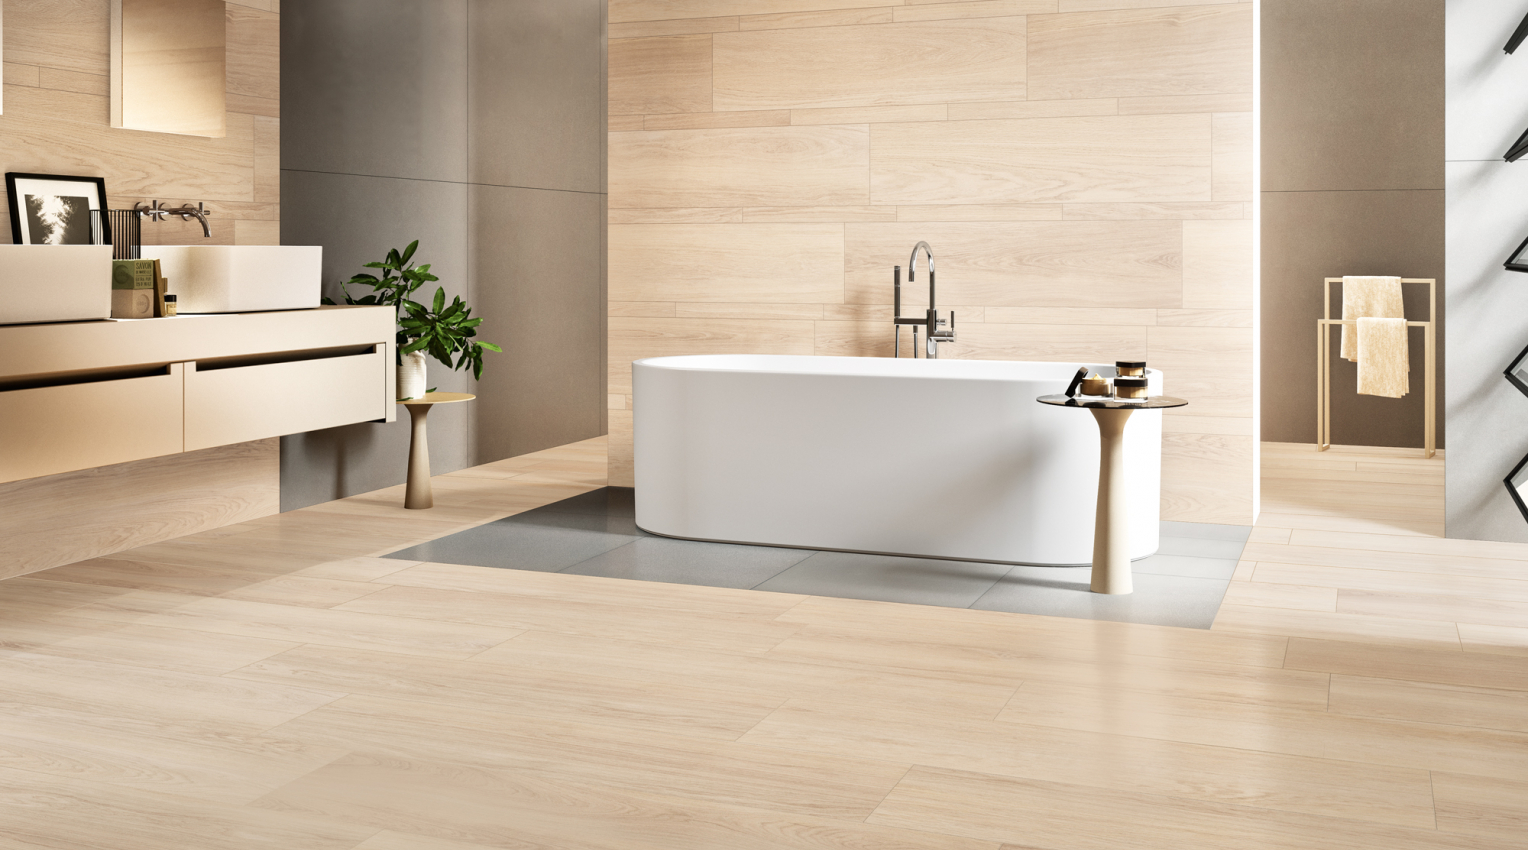 Robur durmast wood effect bathroom tiles